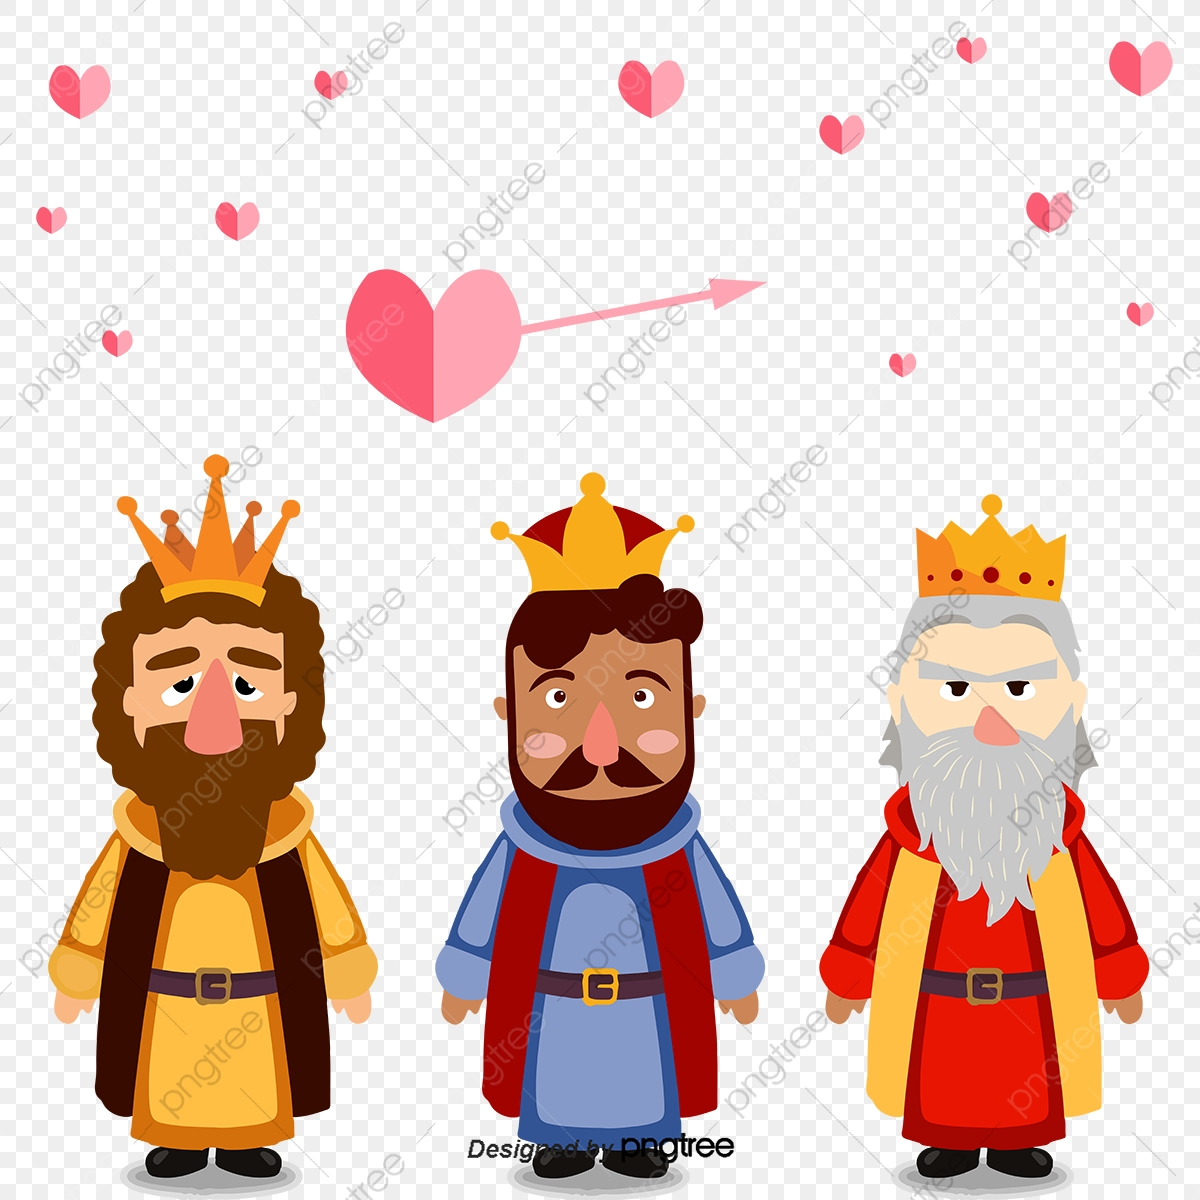 Flat Three Kings, King, Flat, Imperial Crown PNG and Vector.